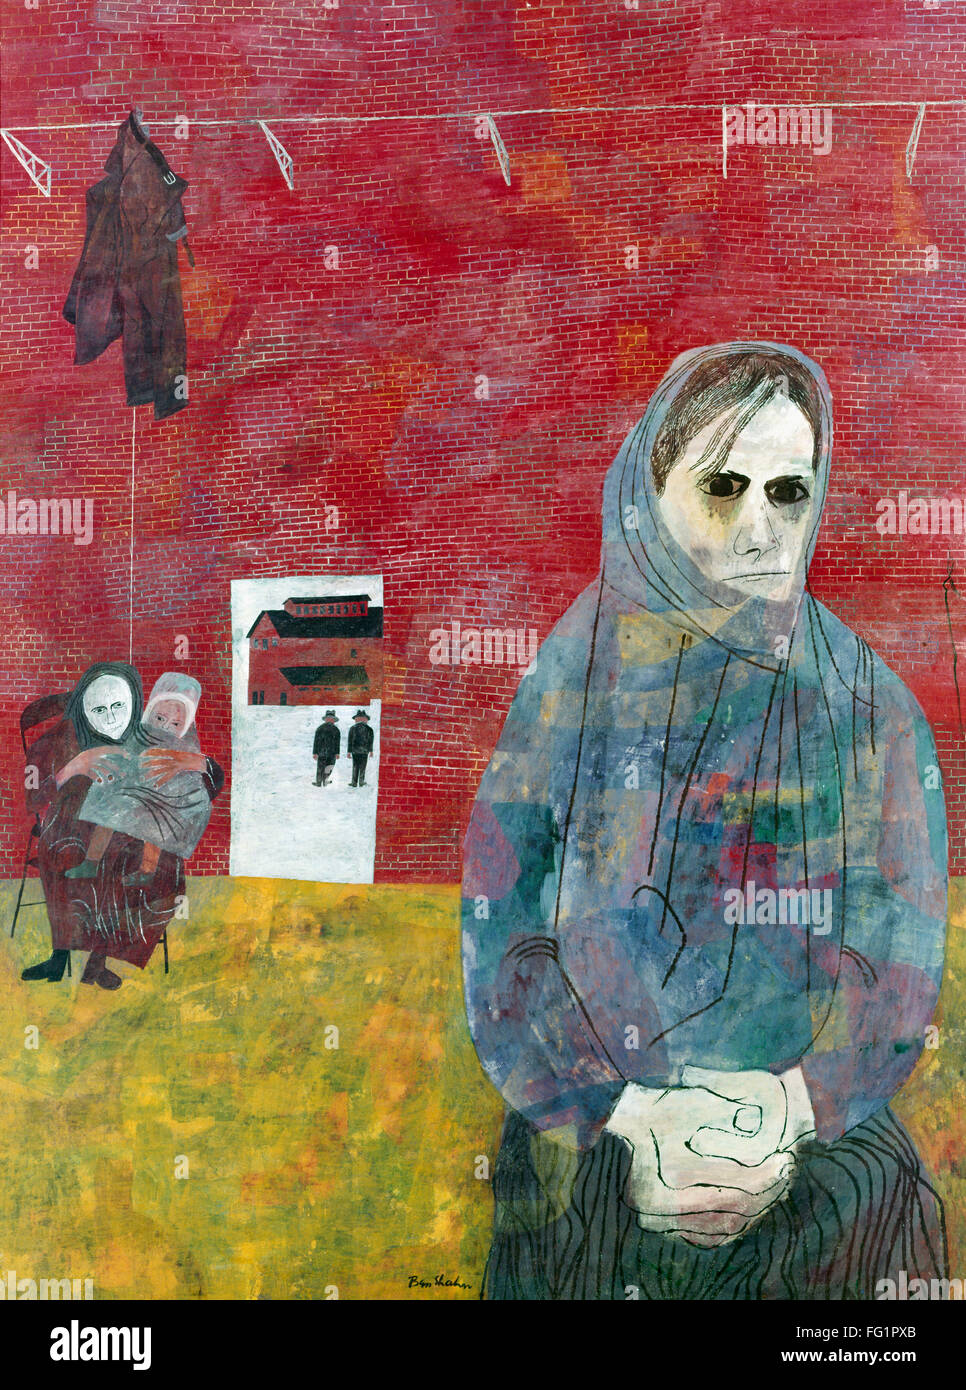 The miners wives an analysis of ben shahns painting